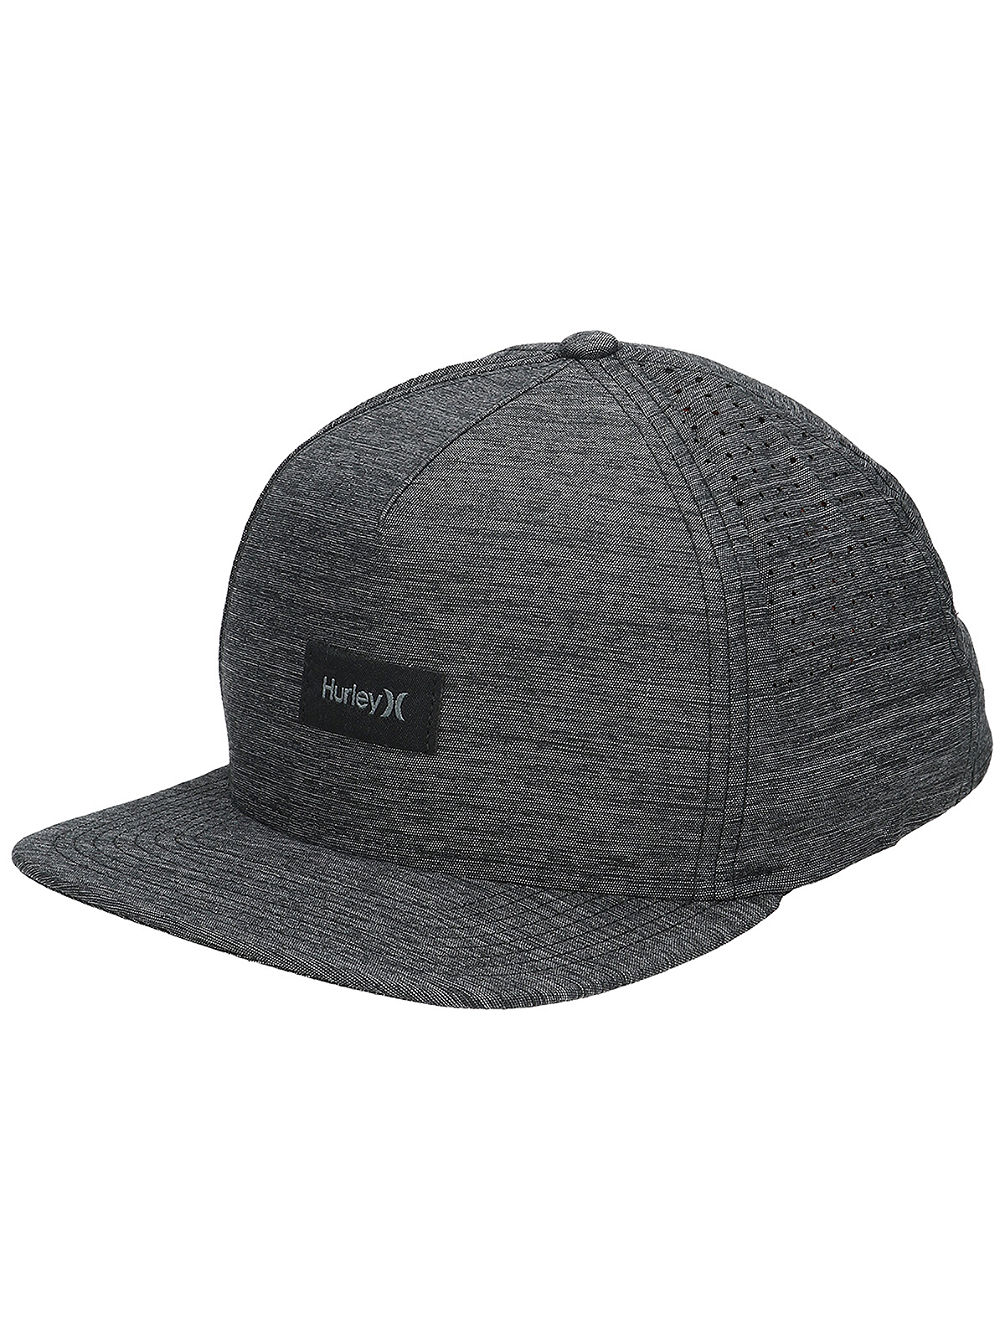 Buy Hurley Dri-Fit Staple Cap online at blue-tomato.com f17f8a8a858